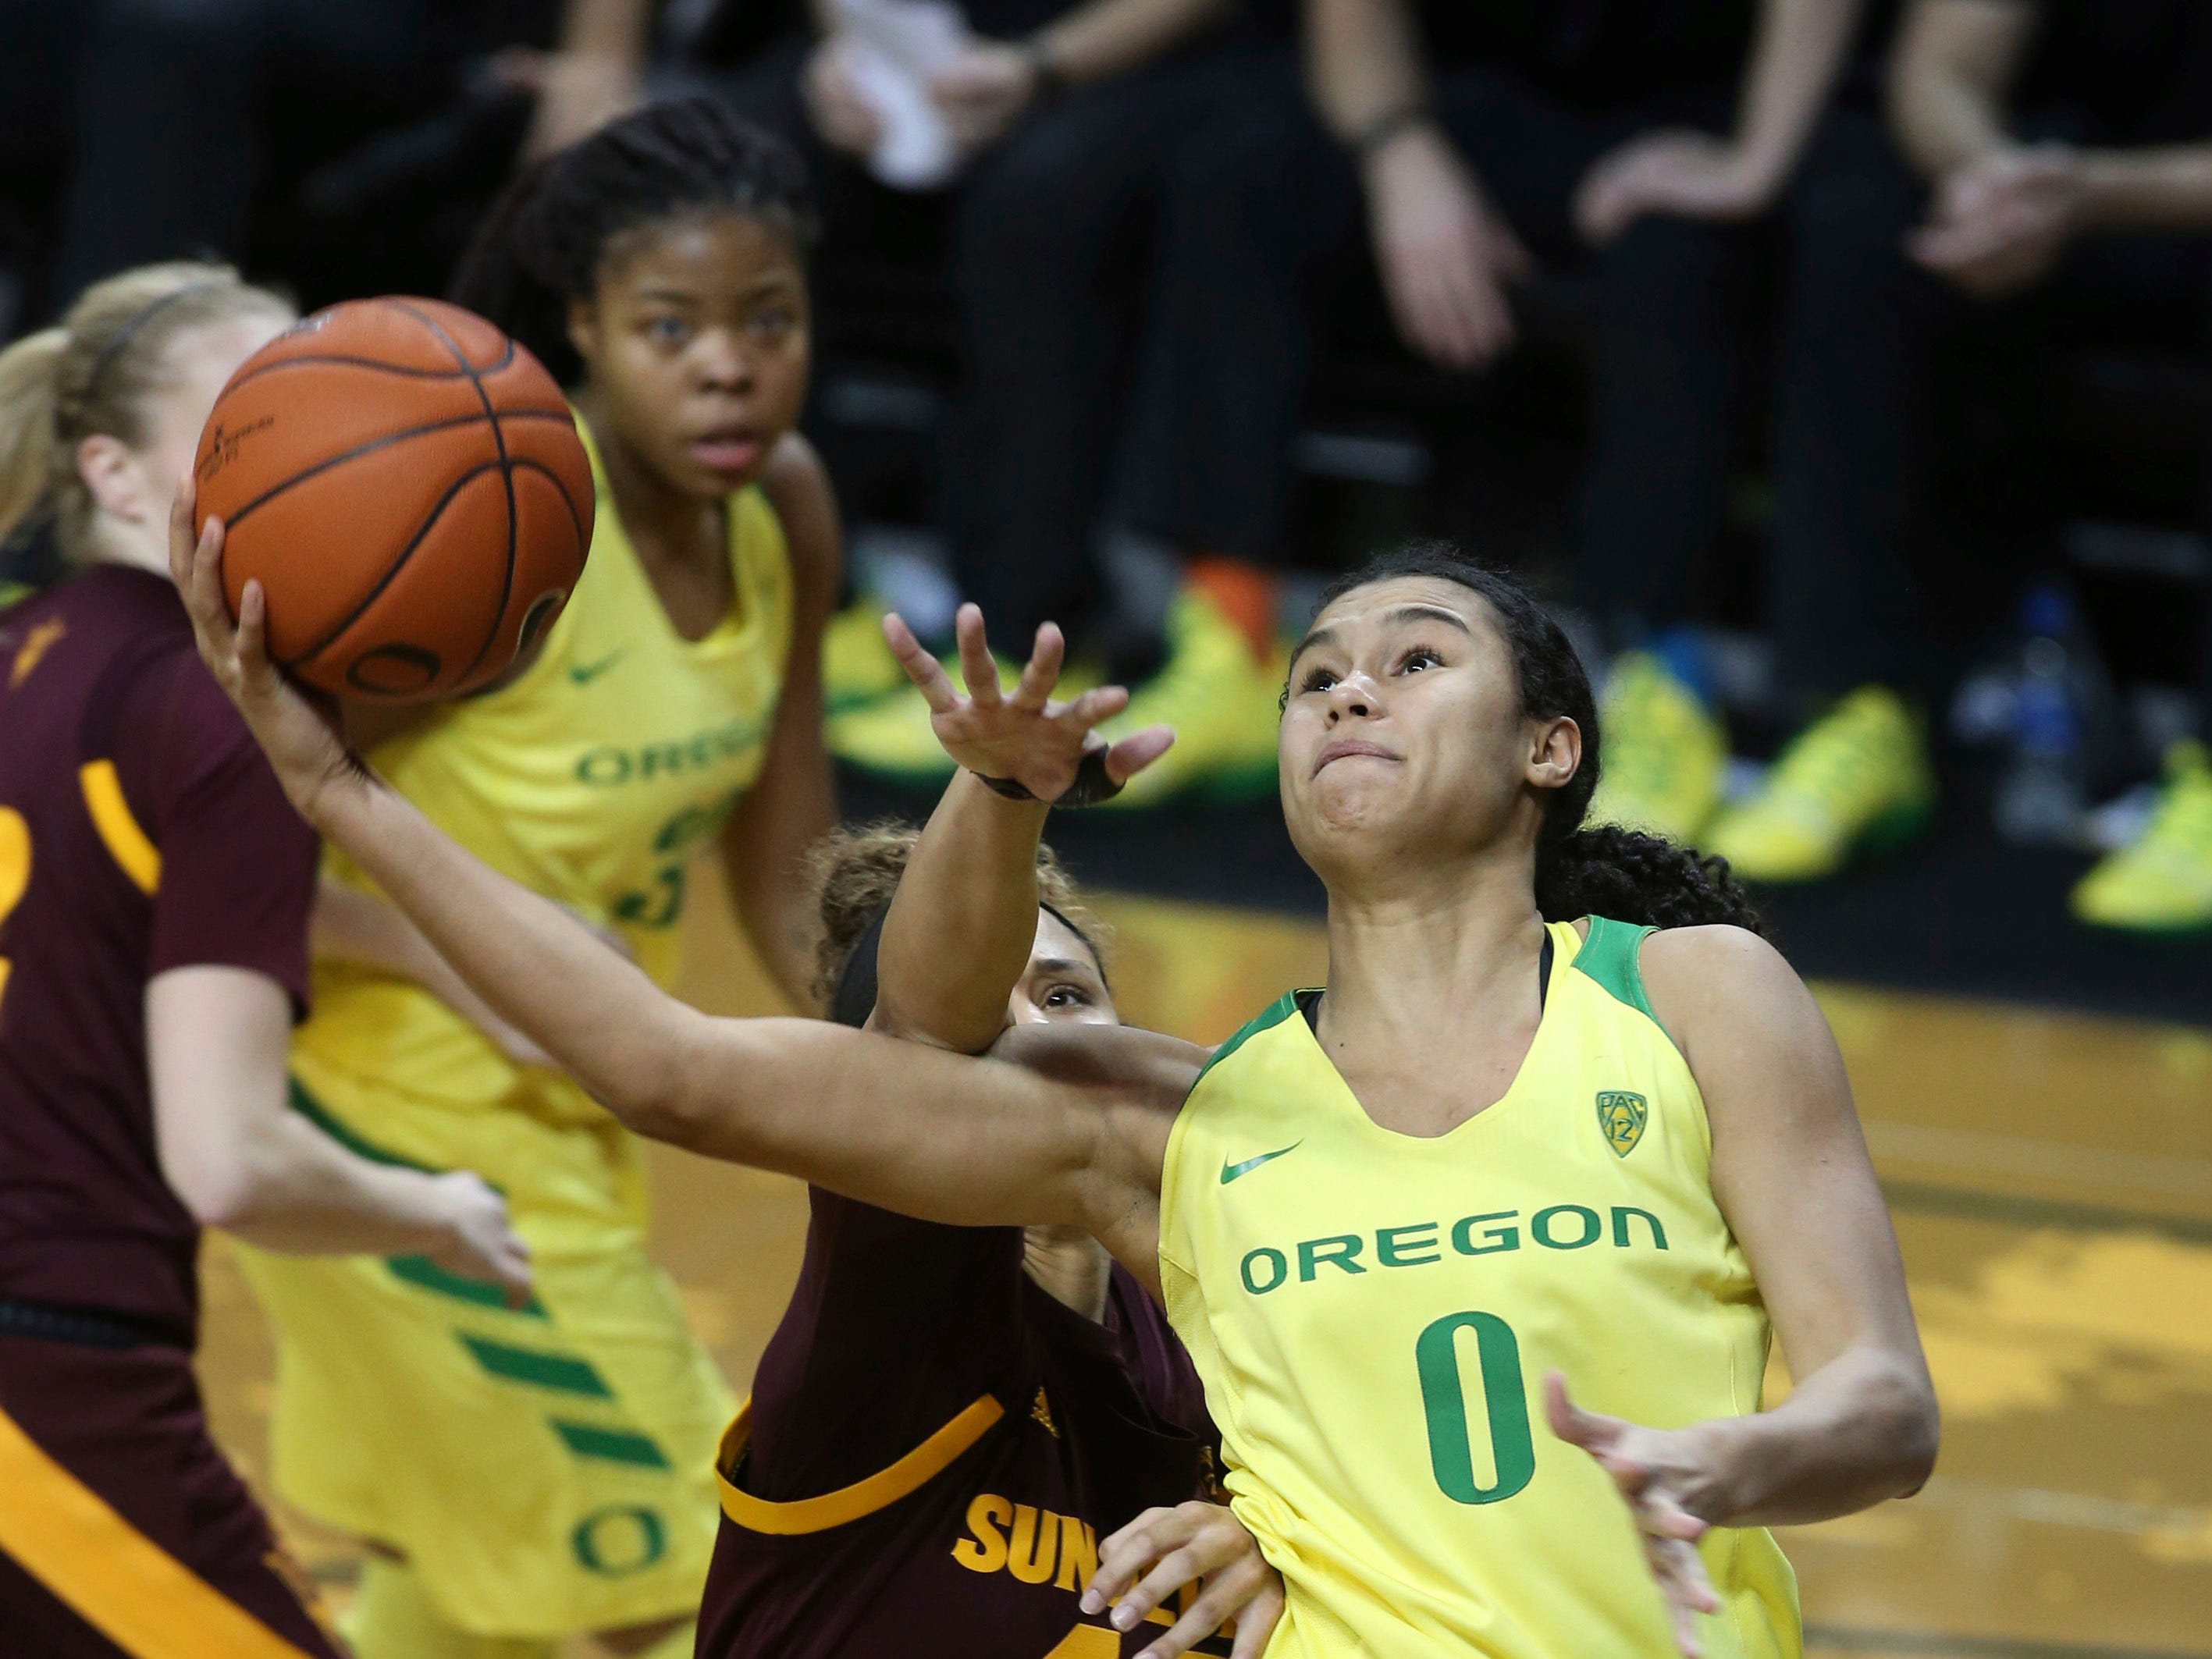 Oregon's Satou Sabally, right, goes up for a shot ahead of Arizona State's Courtney Ekmark, left, Oregon's Oti Gildon and Arizona State's Kianna Ibis during the fourth quarter of an NCAA college basketball game Friday, Jan. 18, 2019, in Eugene, Ore. (AP Photo/Chris Pietsch)